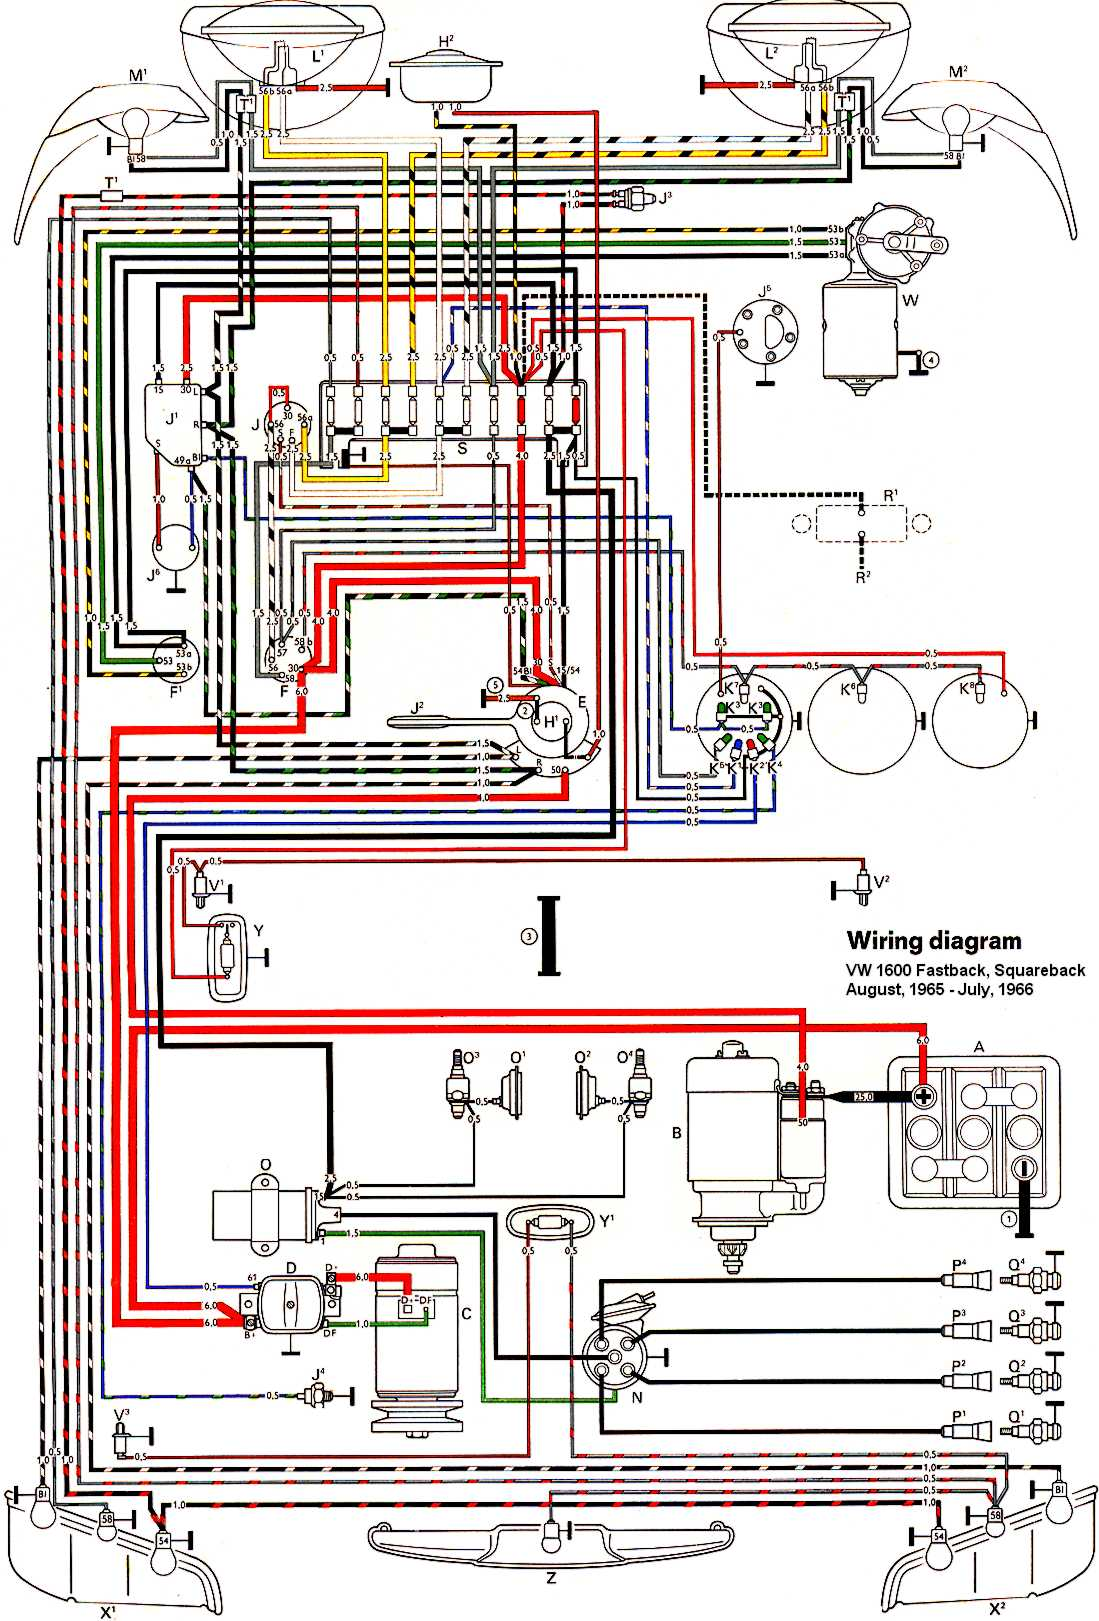 type3_1600_66 vw bus wiring diagram 1965 vw bus wiring diagram \u2022 wiring diagrams 1973 vw beetle wiring diagram at n-0.co